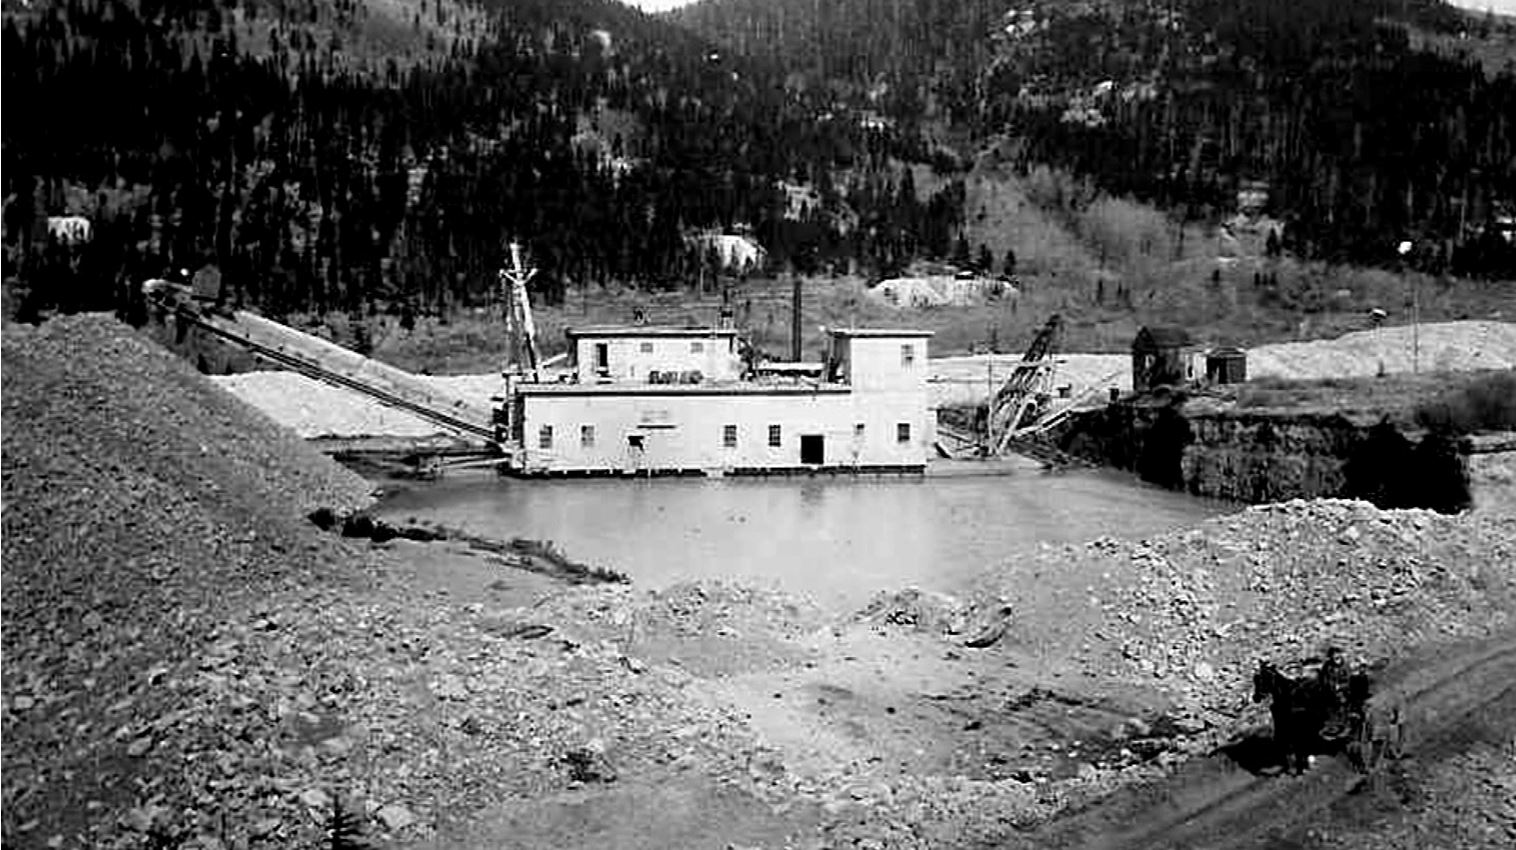 The Reiling Dredge as it appeared when in opperation along French Gulch, east of Breckenridge. This dredge operated from 1909 to 1922, removing around $7 million in gold. (credit: Breckenridge Heritage Alliance)